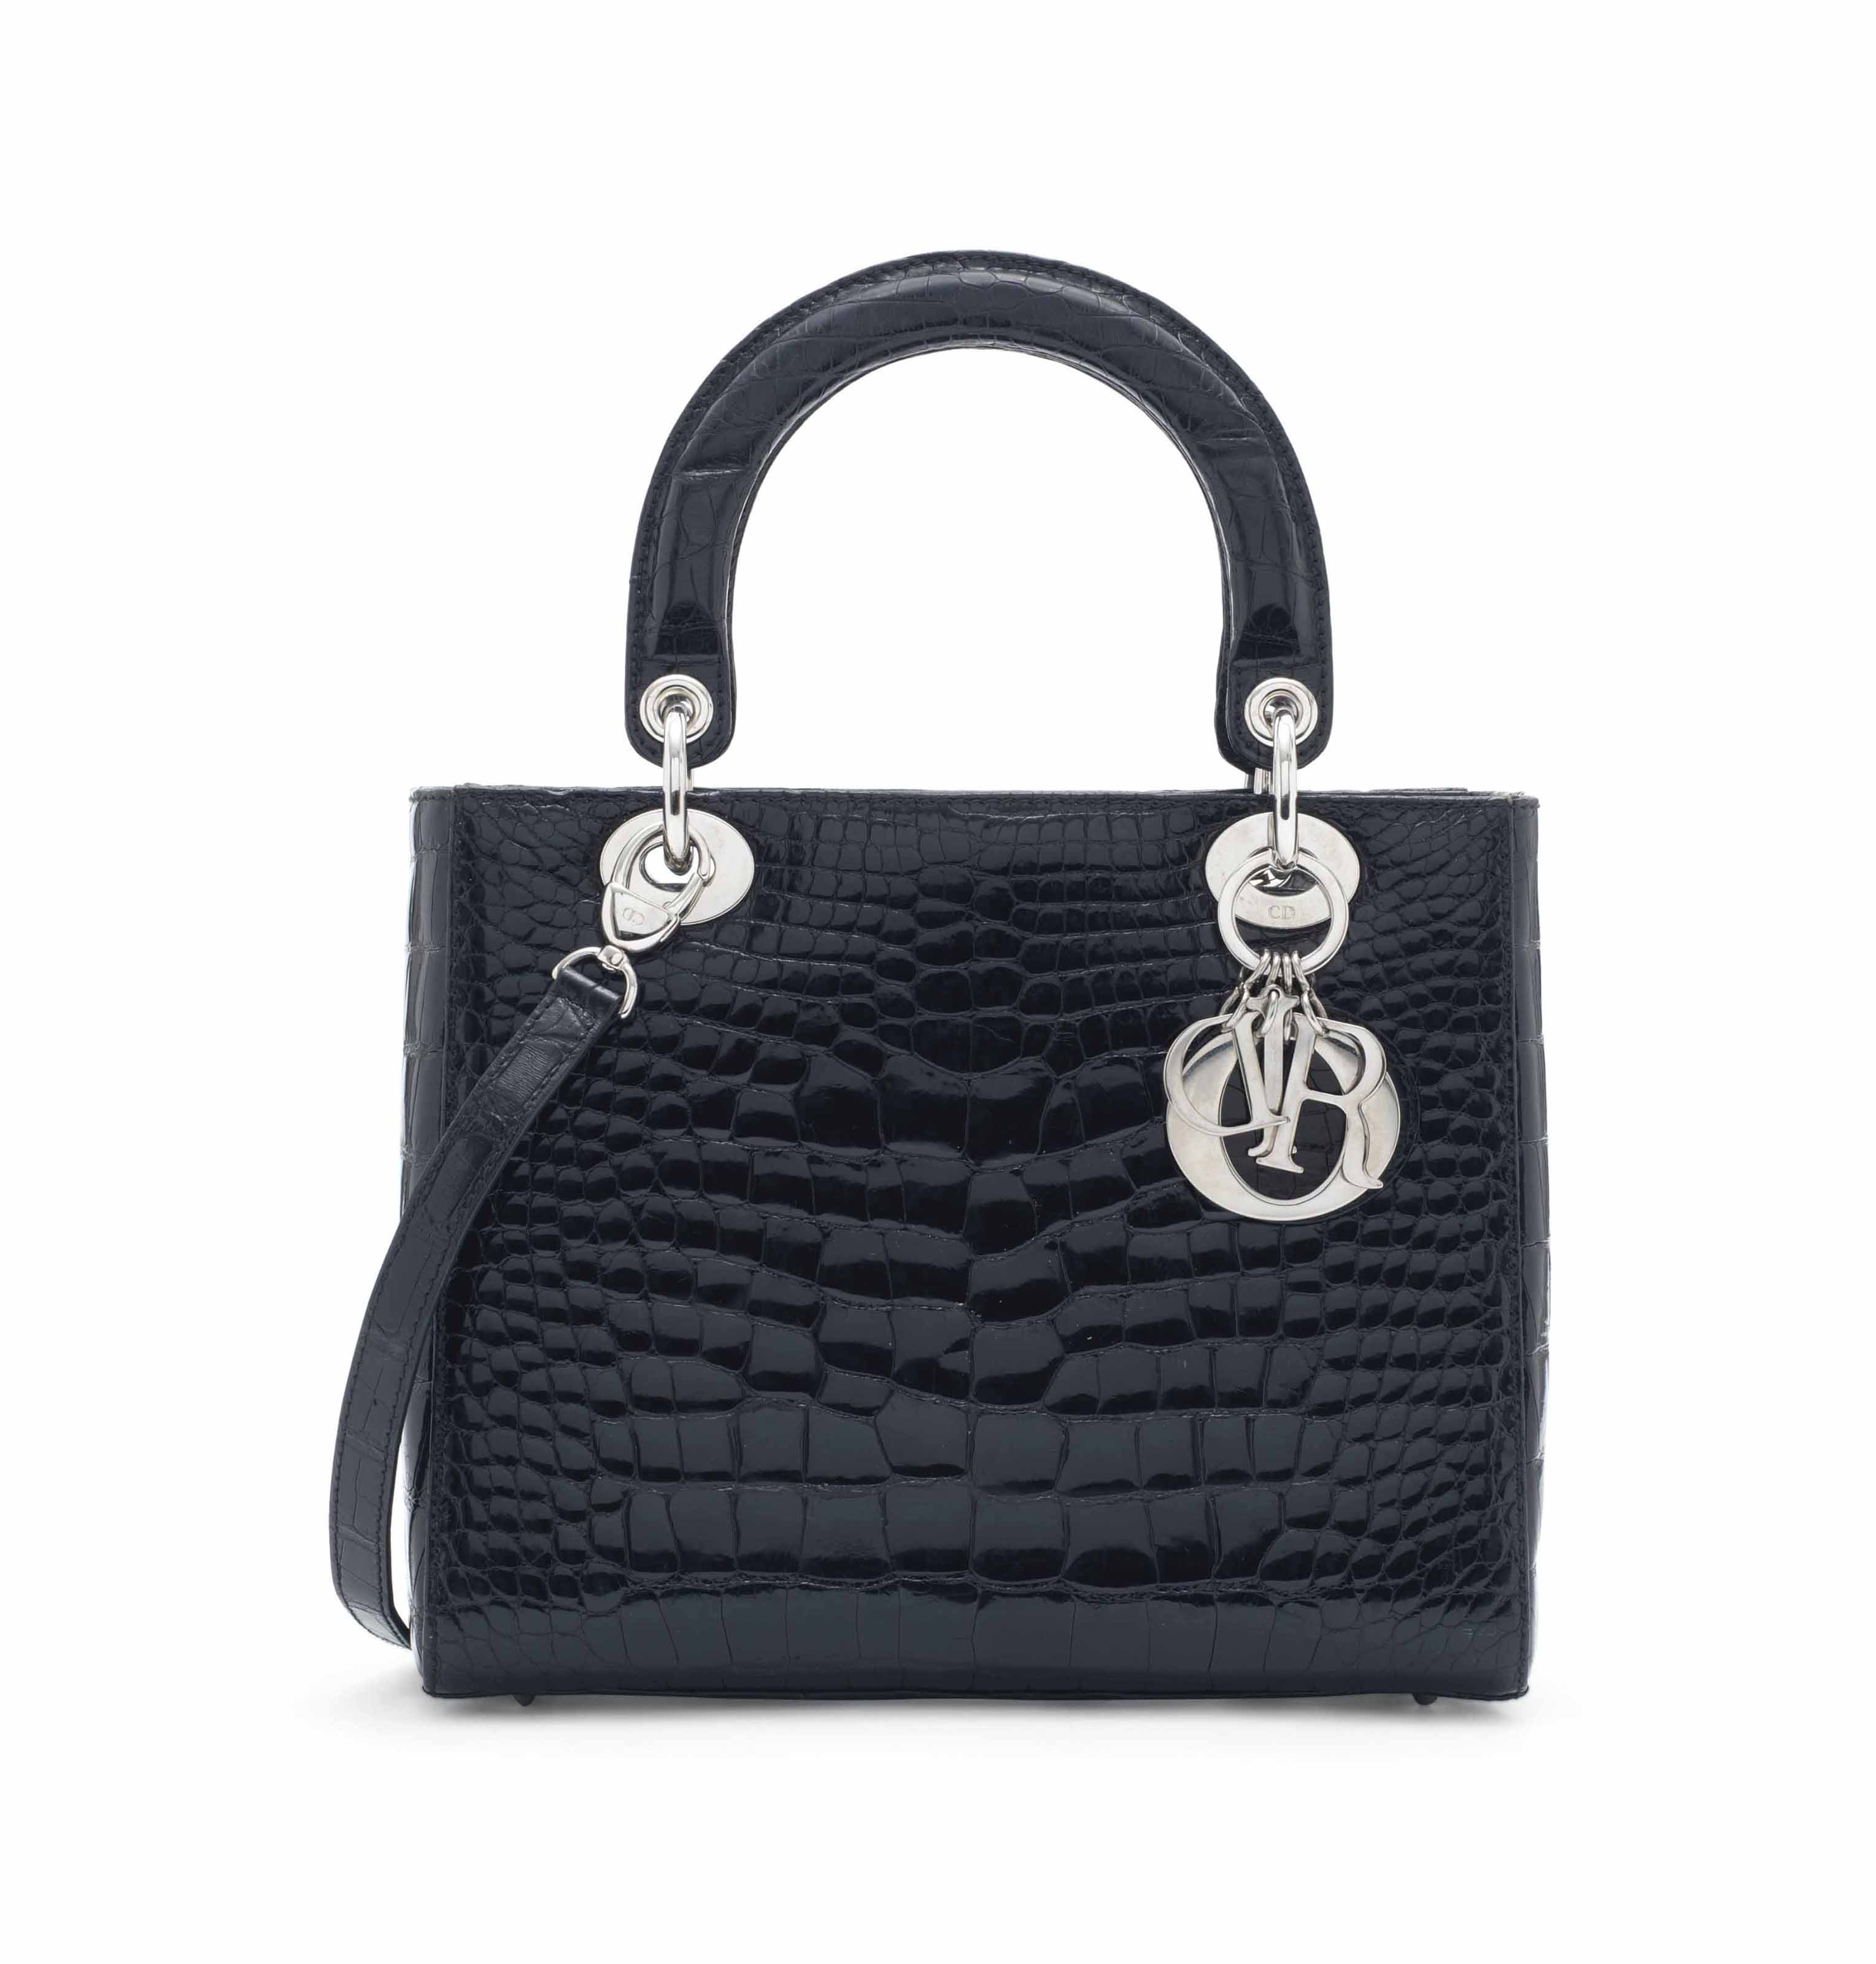 0e101c22beab A shiny black alligator Lady Dior with silver hardware, Christian Dior,  2010s. Sold for £8,750 on 12 June 2017 at Christie's London. '